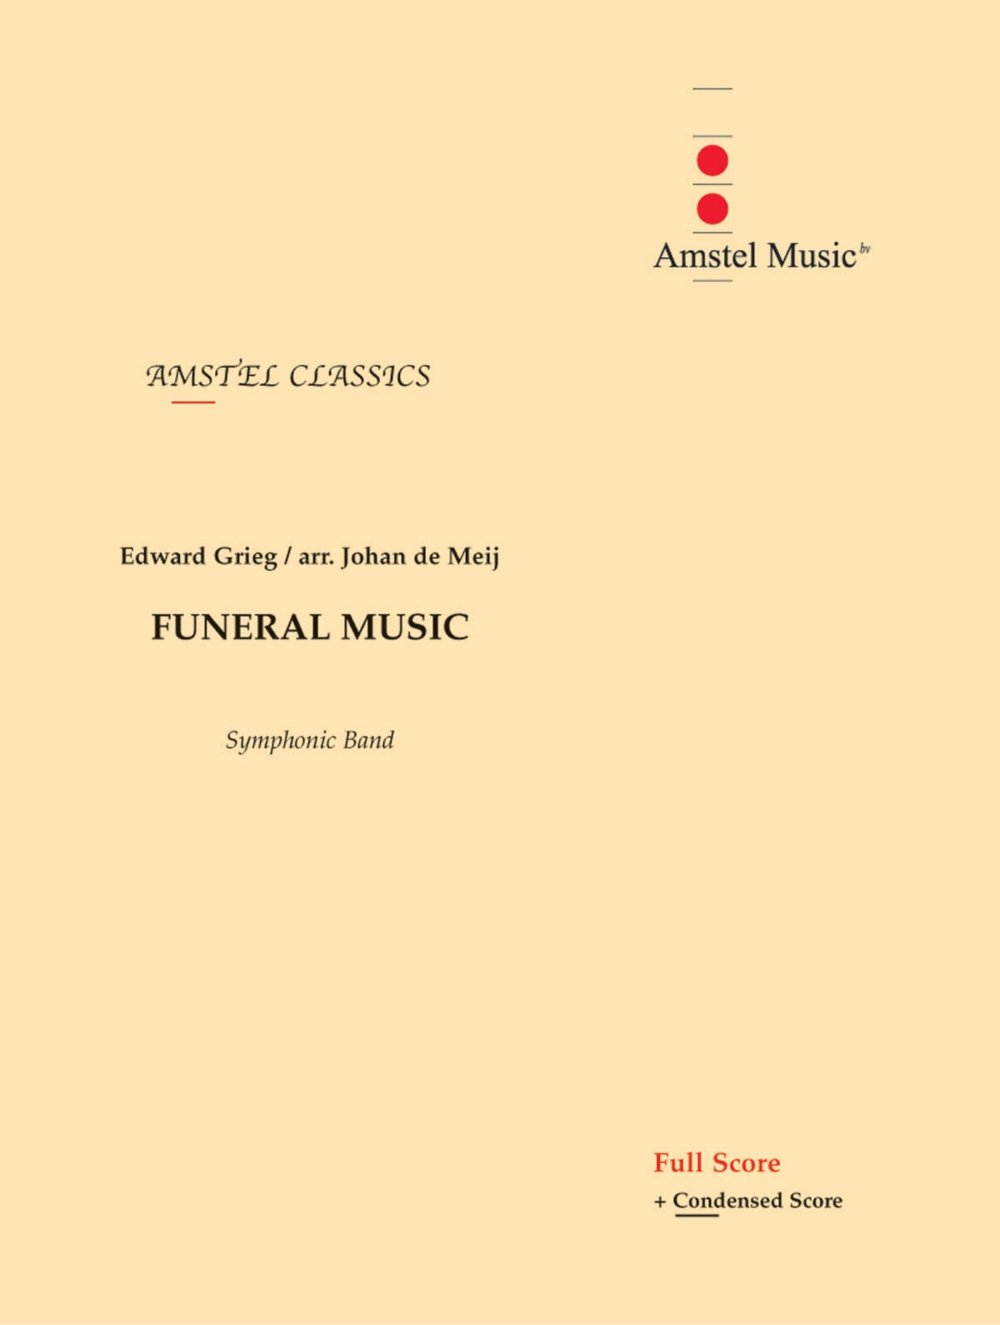 Download Amstel Music Funeral Music (from The Melodrama Bergliot) (Score and Parts) Concert Band Level 2-3 by Johan de Meij pdf